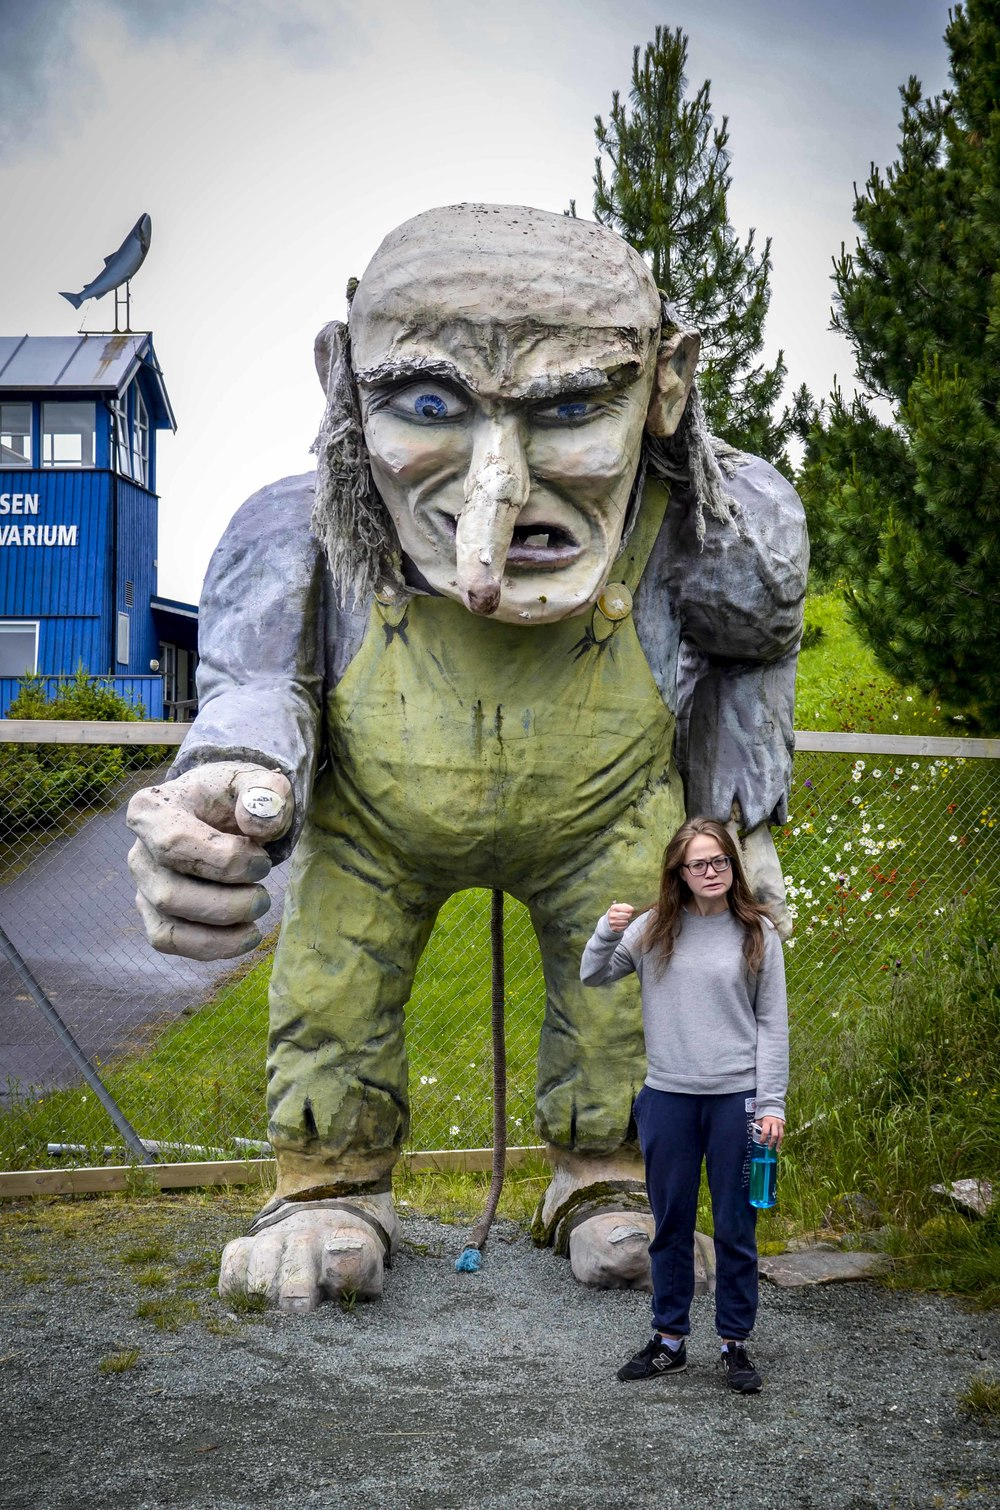 If you chose to continue on the E6 road instead of taking the coastal road, you can stop by the Namsen salmon aquarium and take your picture with a huge troll, like we did last year.